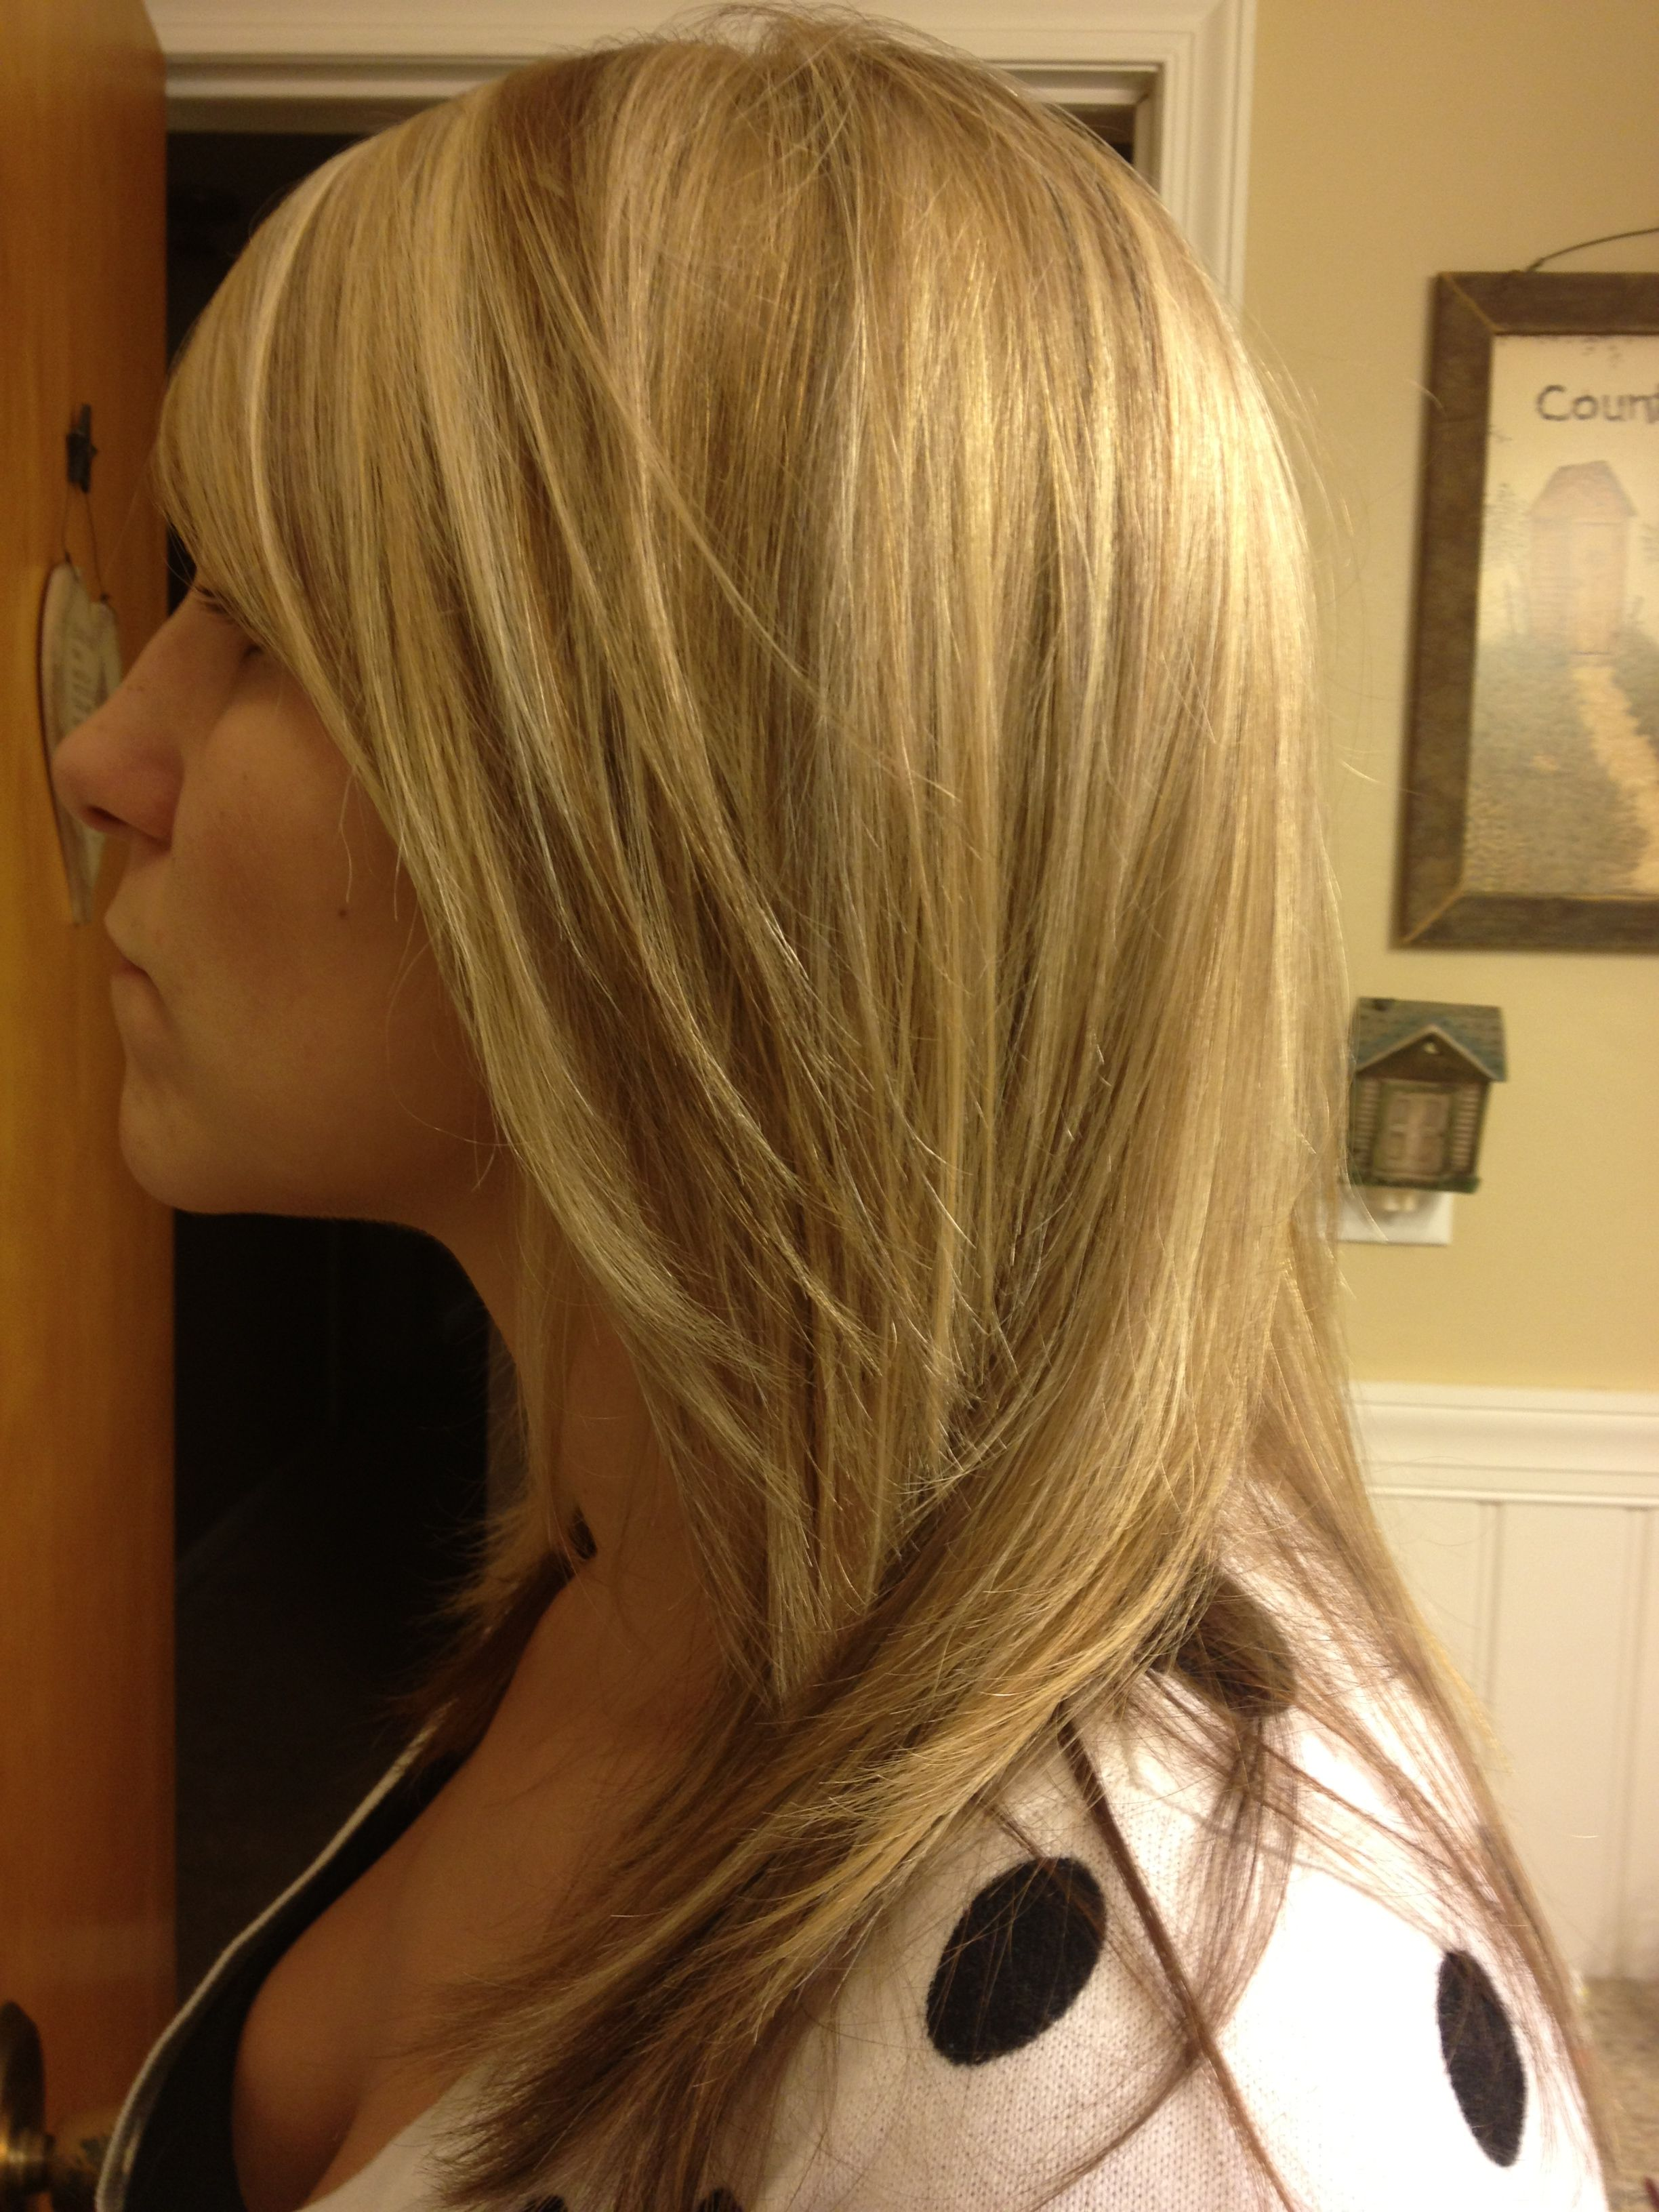 Three blonde hair foils